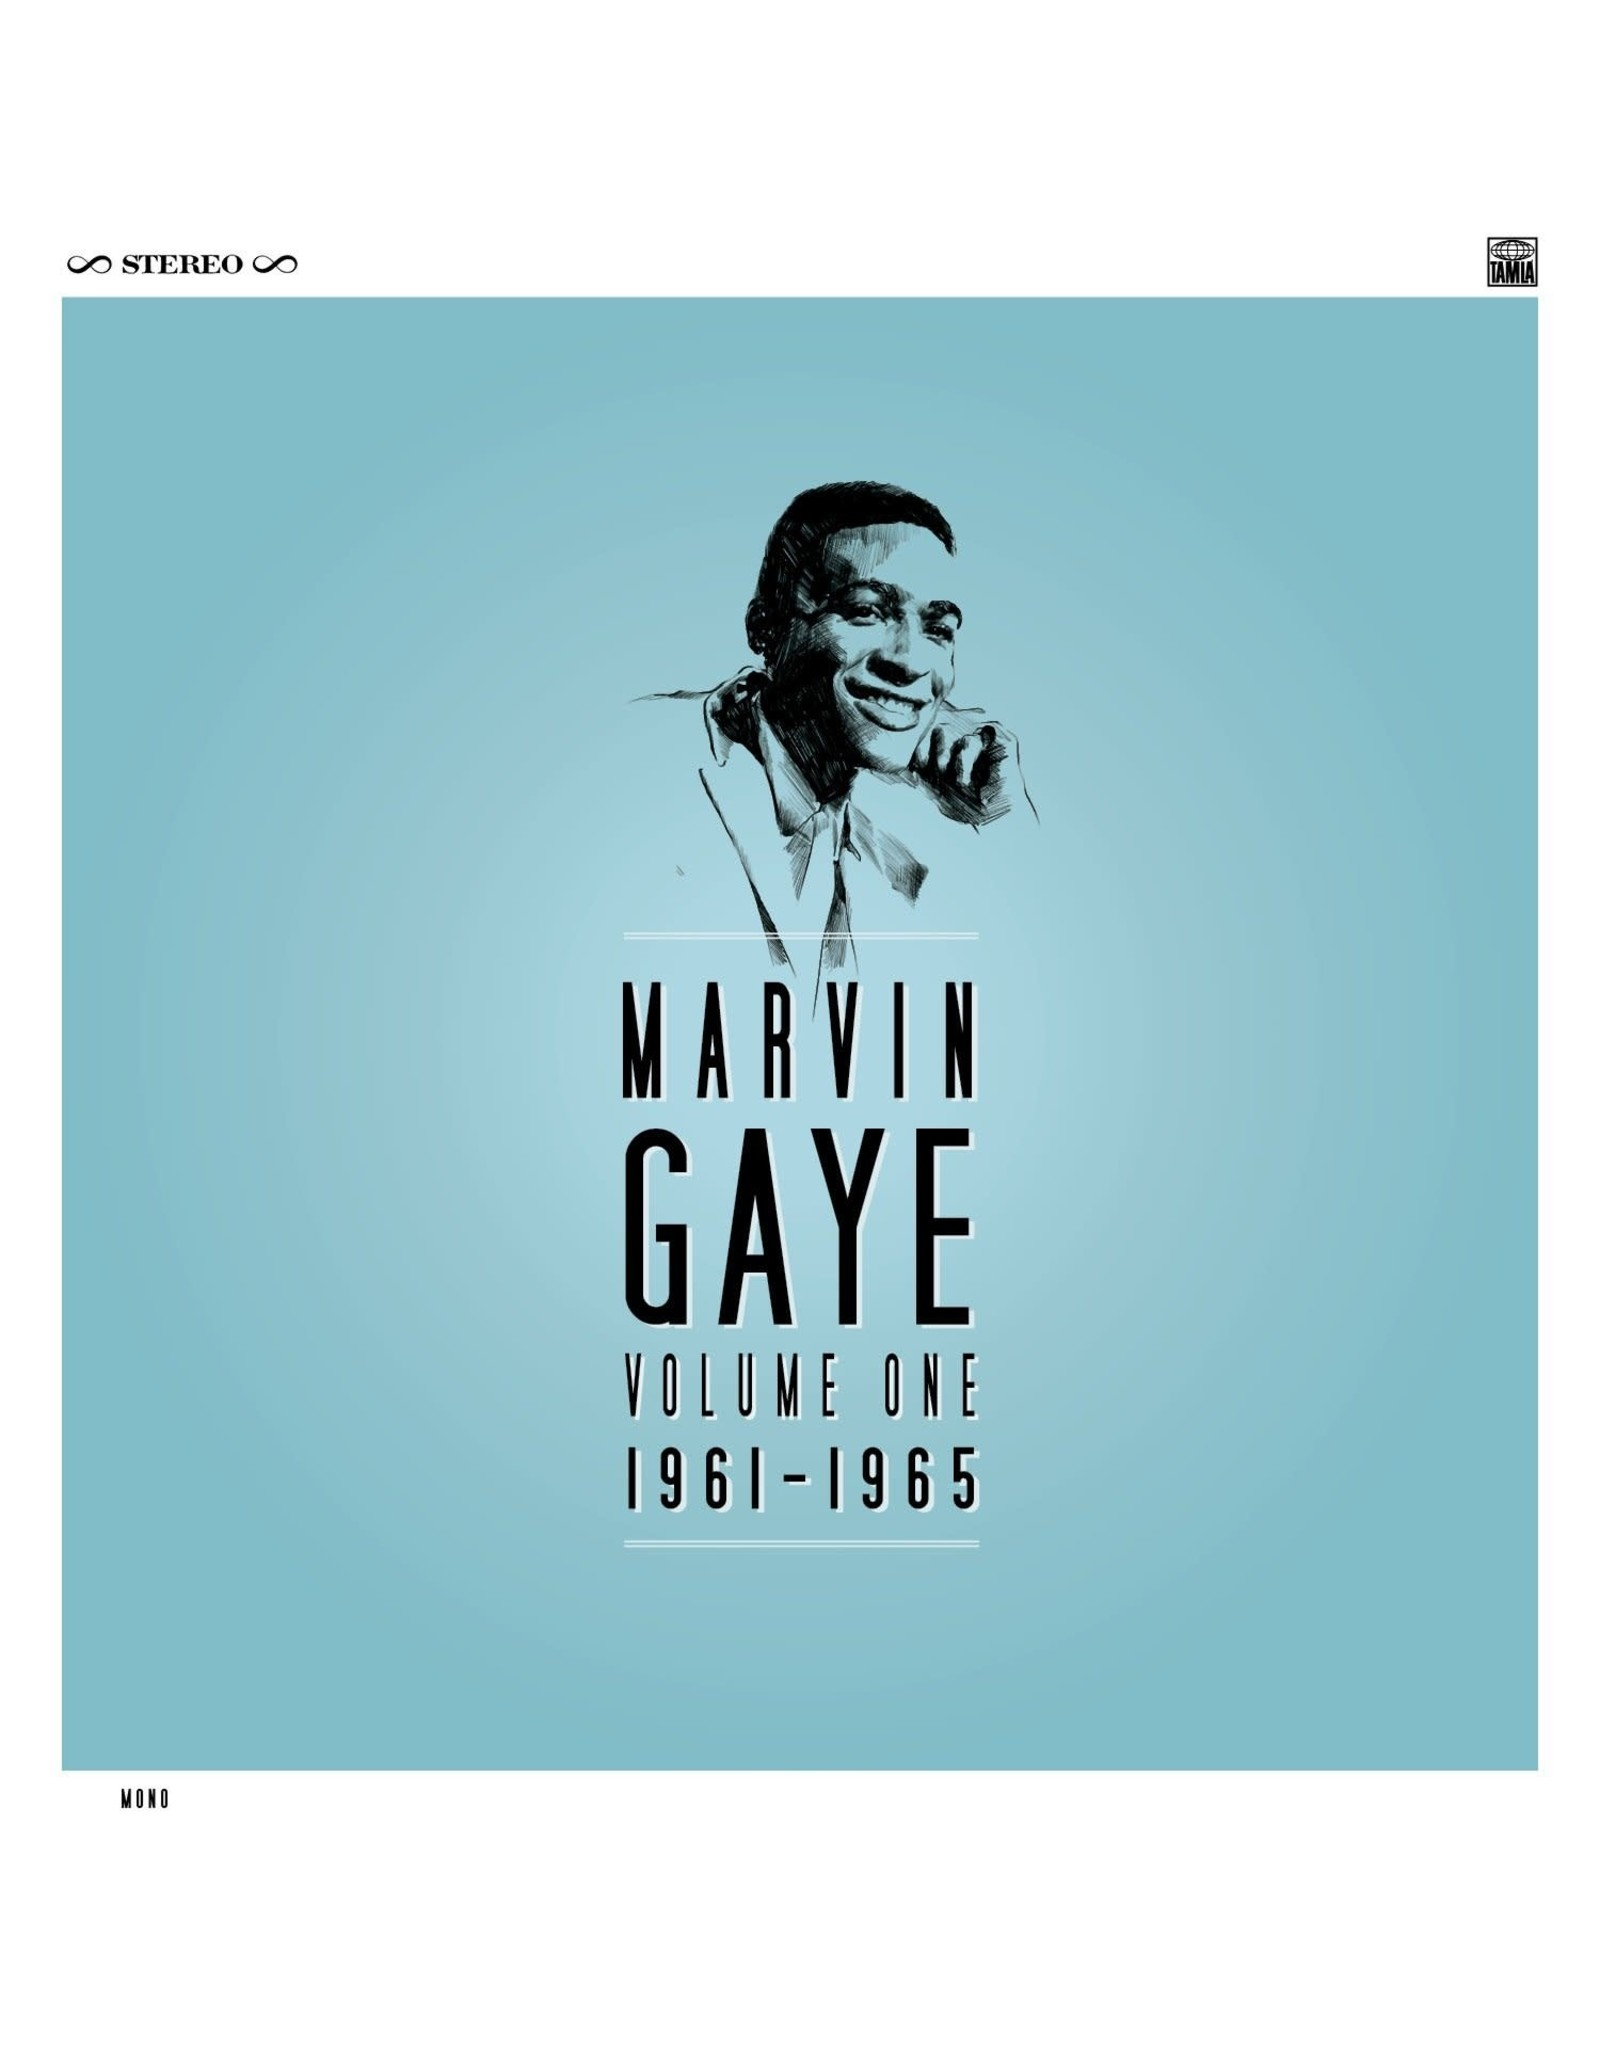 Gaye, Marvin - Volume 1 (1961-1965) LP Box Set